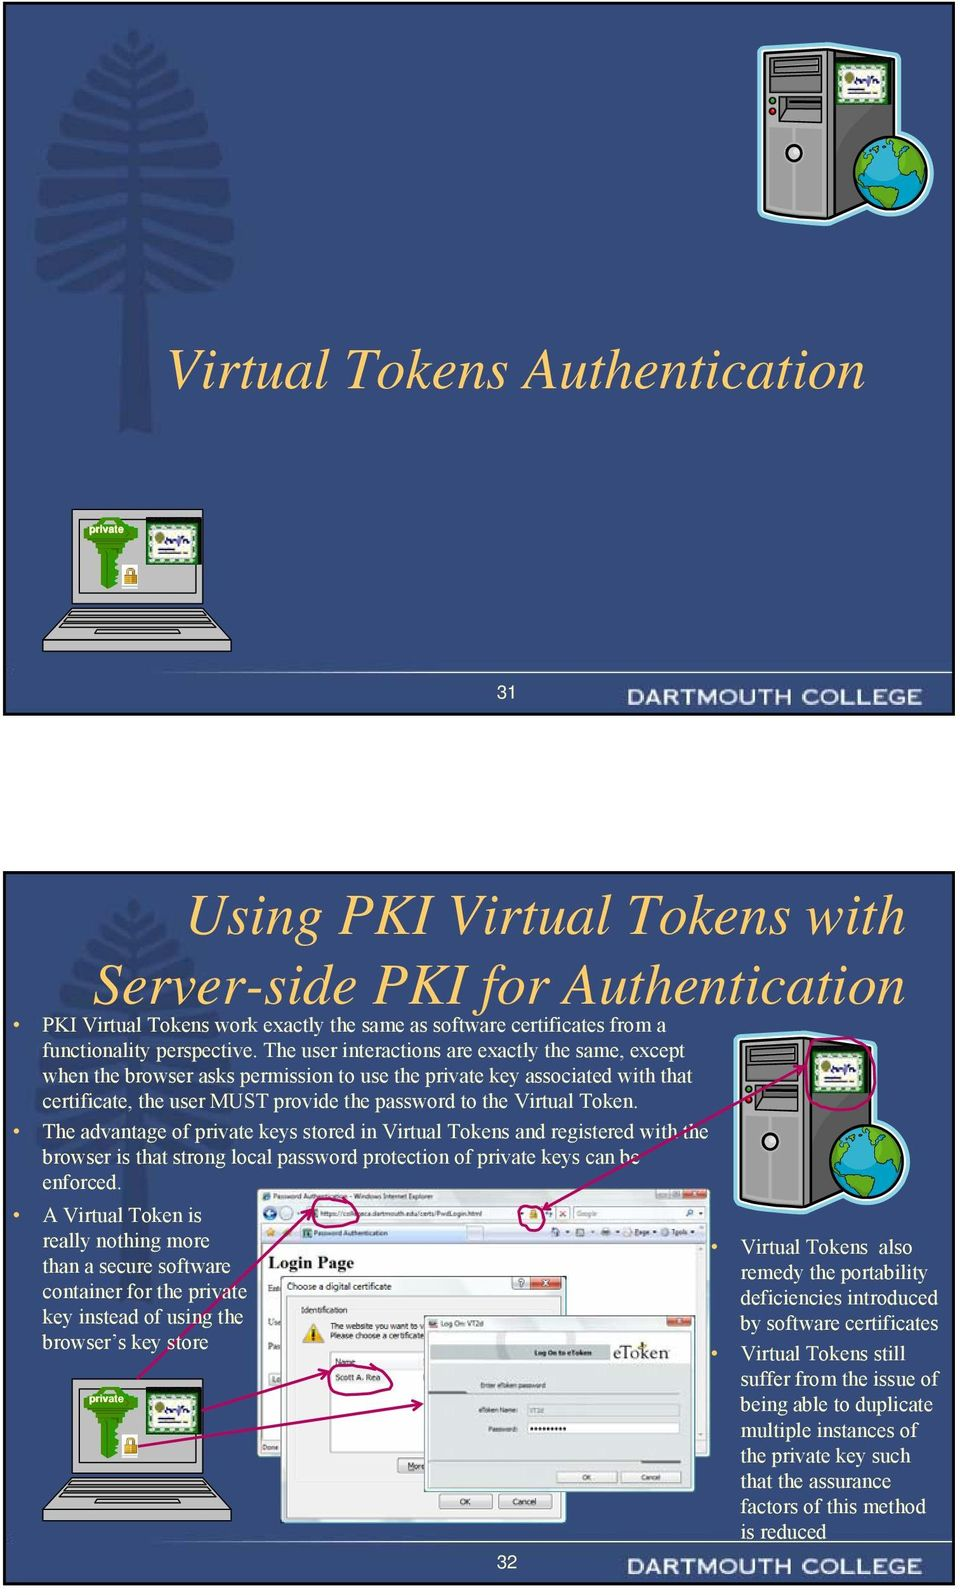 The advantage of keys stored in Virtual Tokens and registered with the browser is that strong local password protection of keys can be enforced.